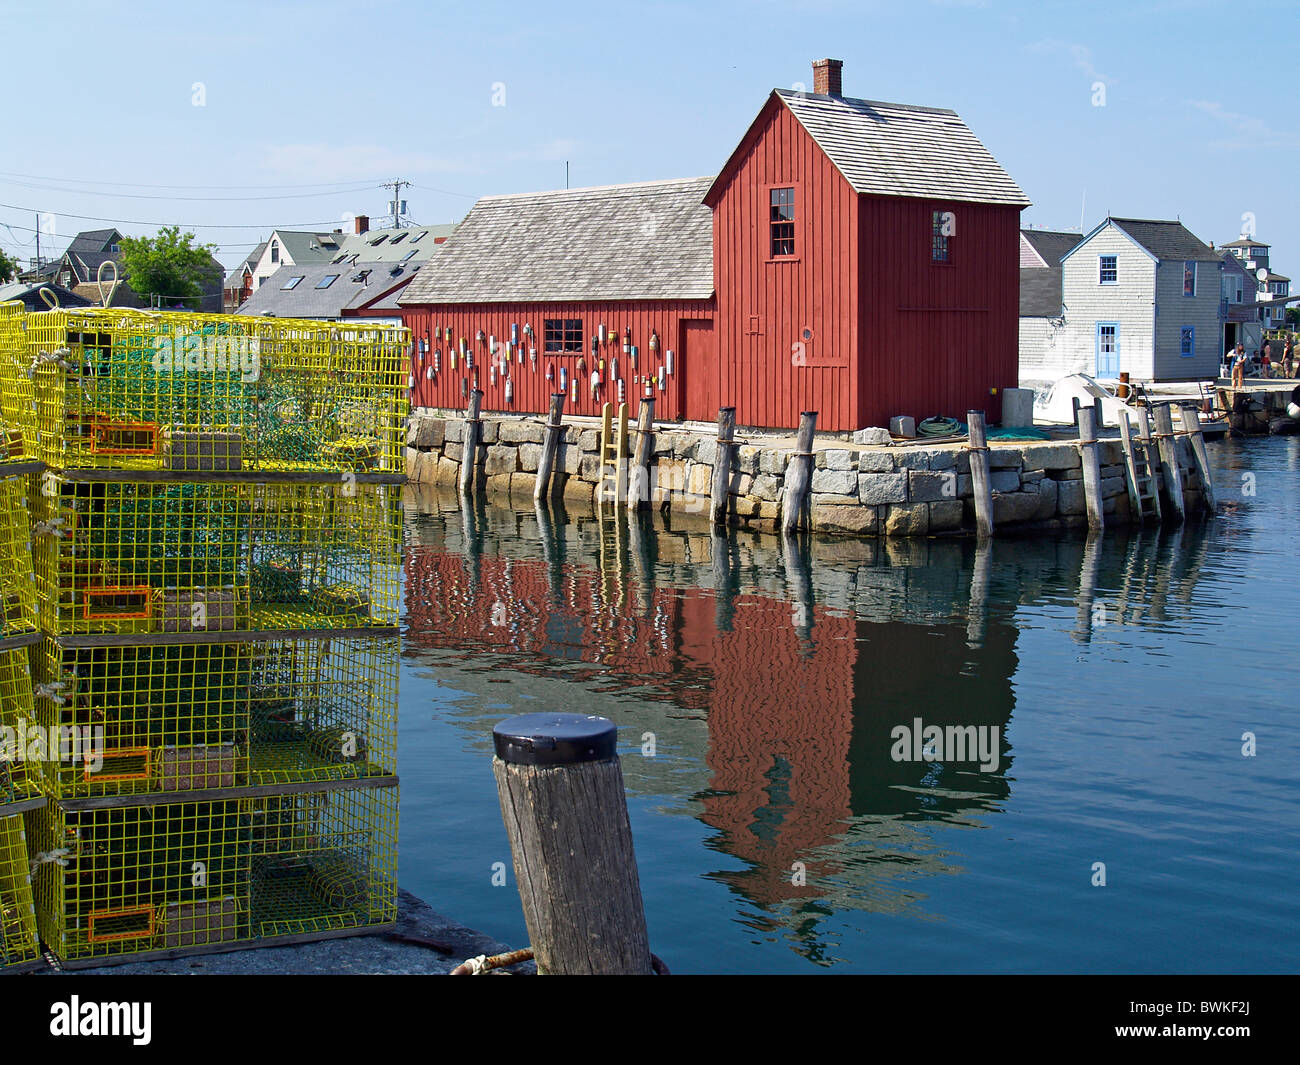 View of Motif #1 at Rockport - Stock Image